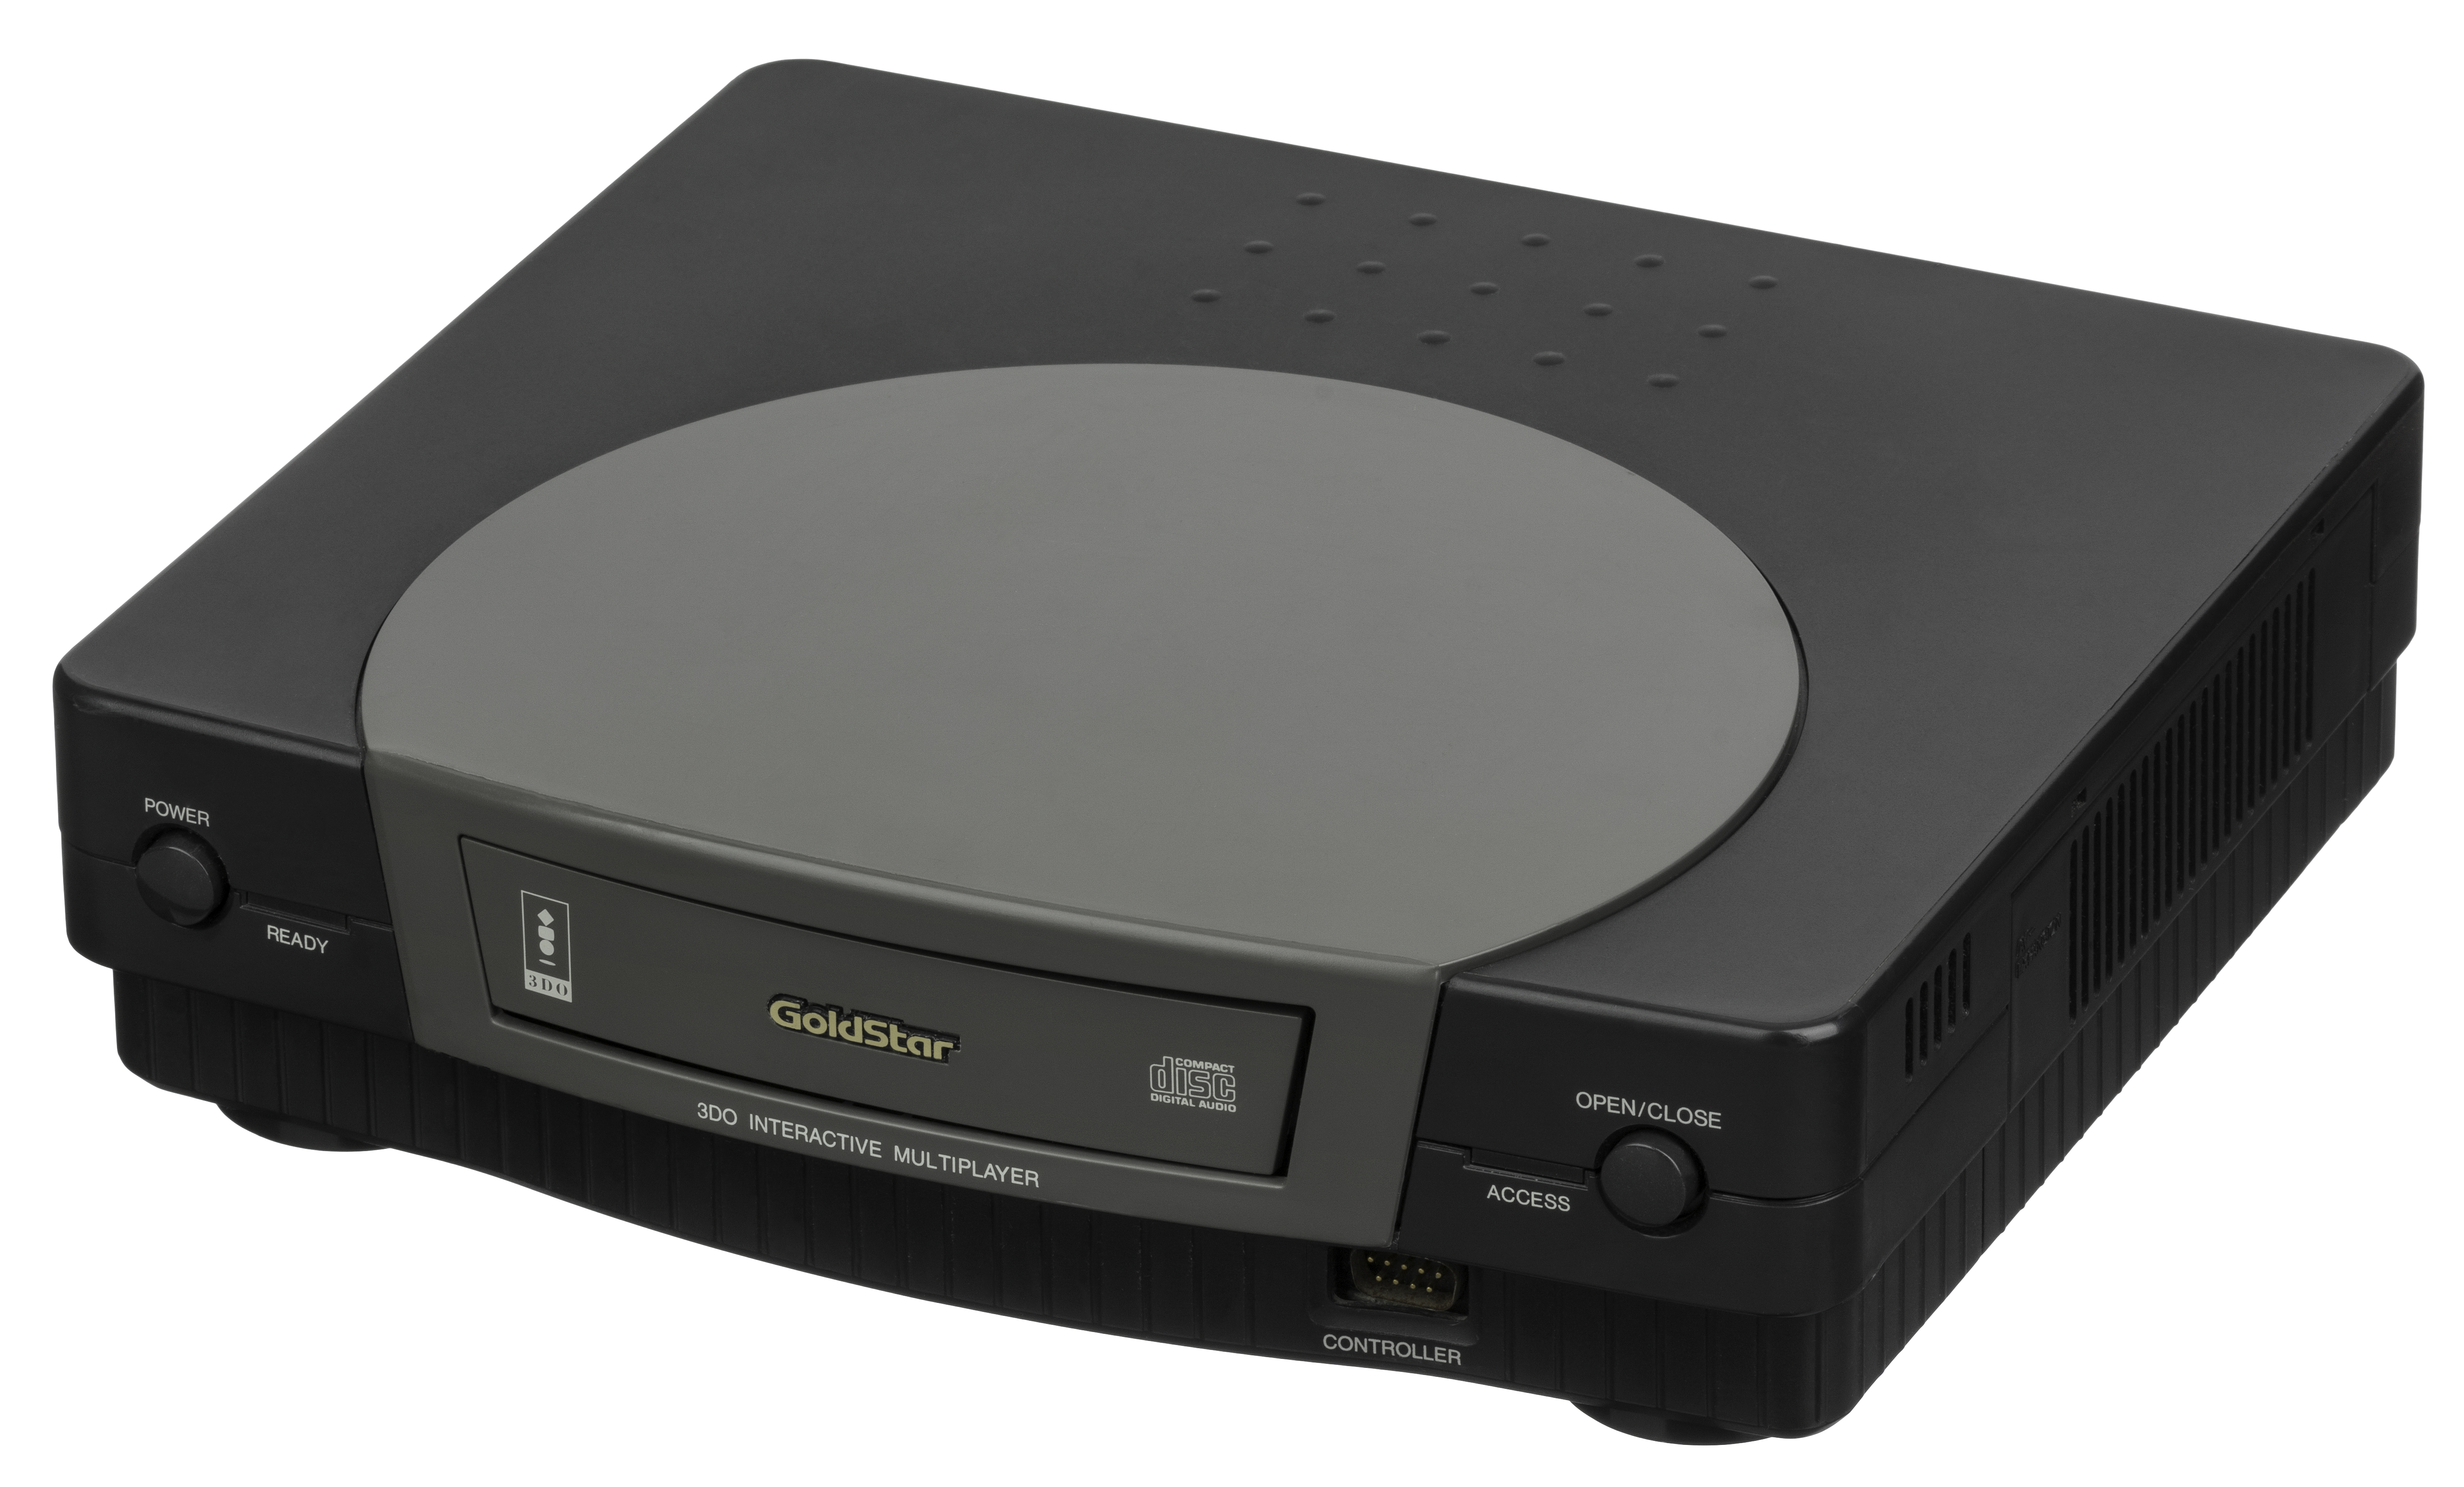 generation gaming console from the South Korean company LG Electronics. Note that the CD tray of this unit is broken, making it misaligned in the slot. Date